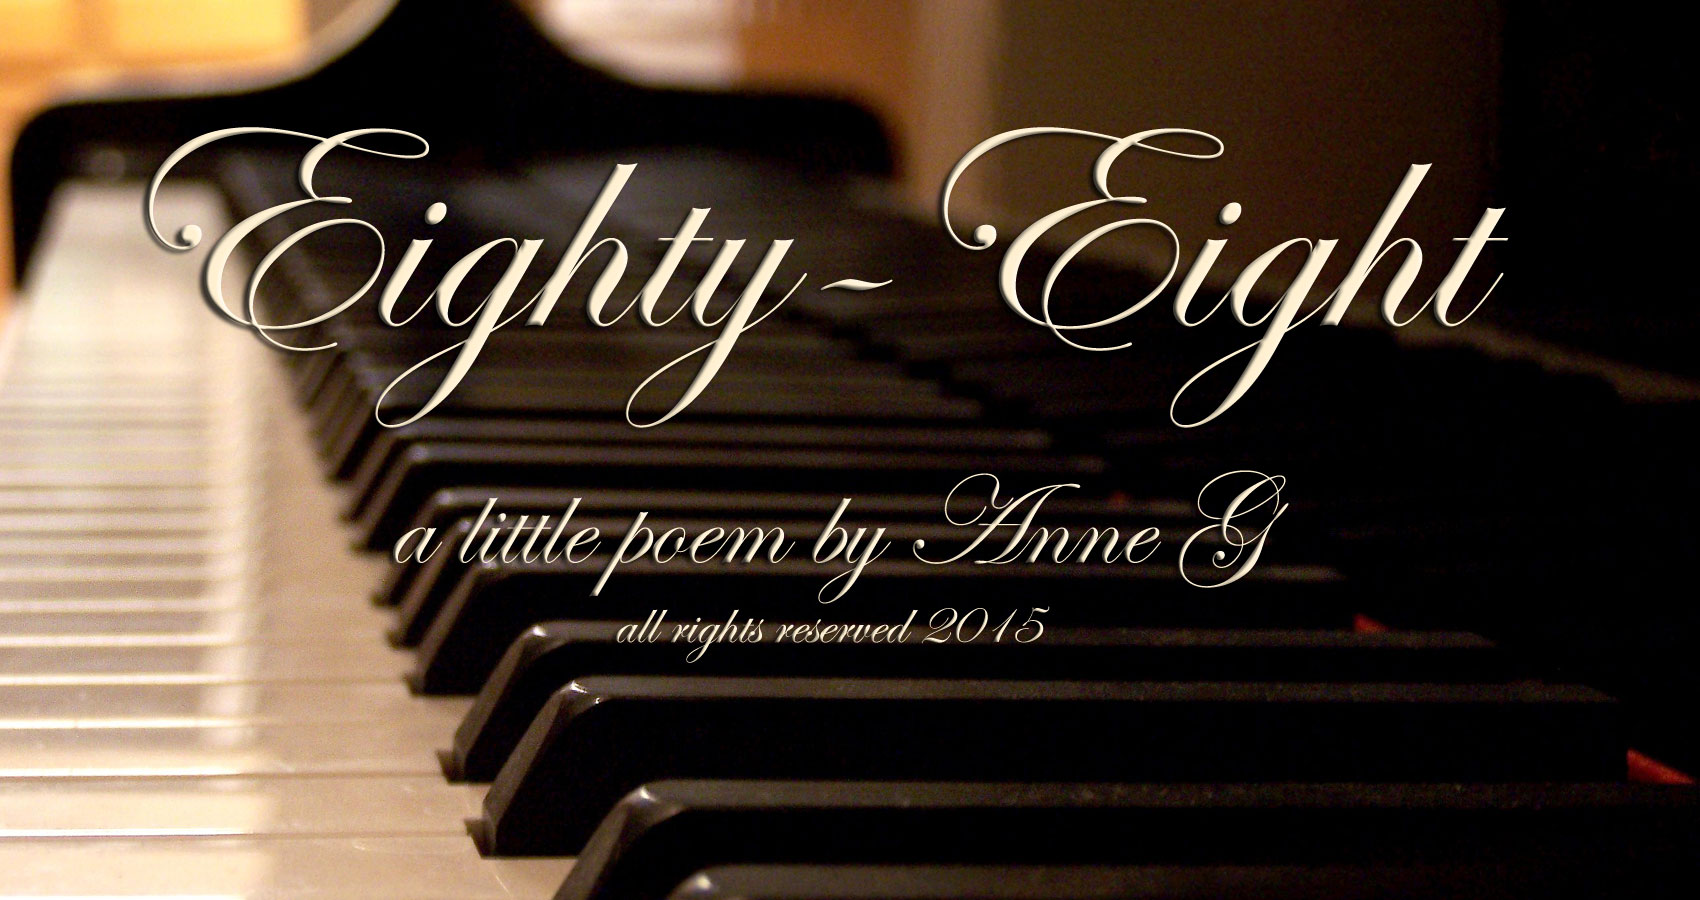 Eighty-Eight Micro Poetry at spillwords.com by Anne G